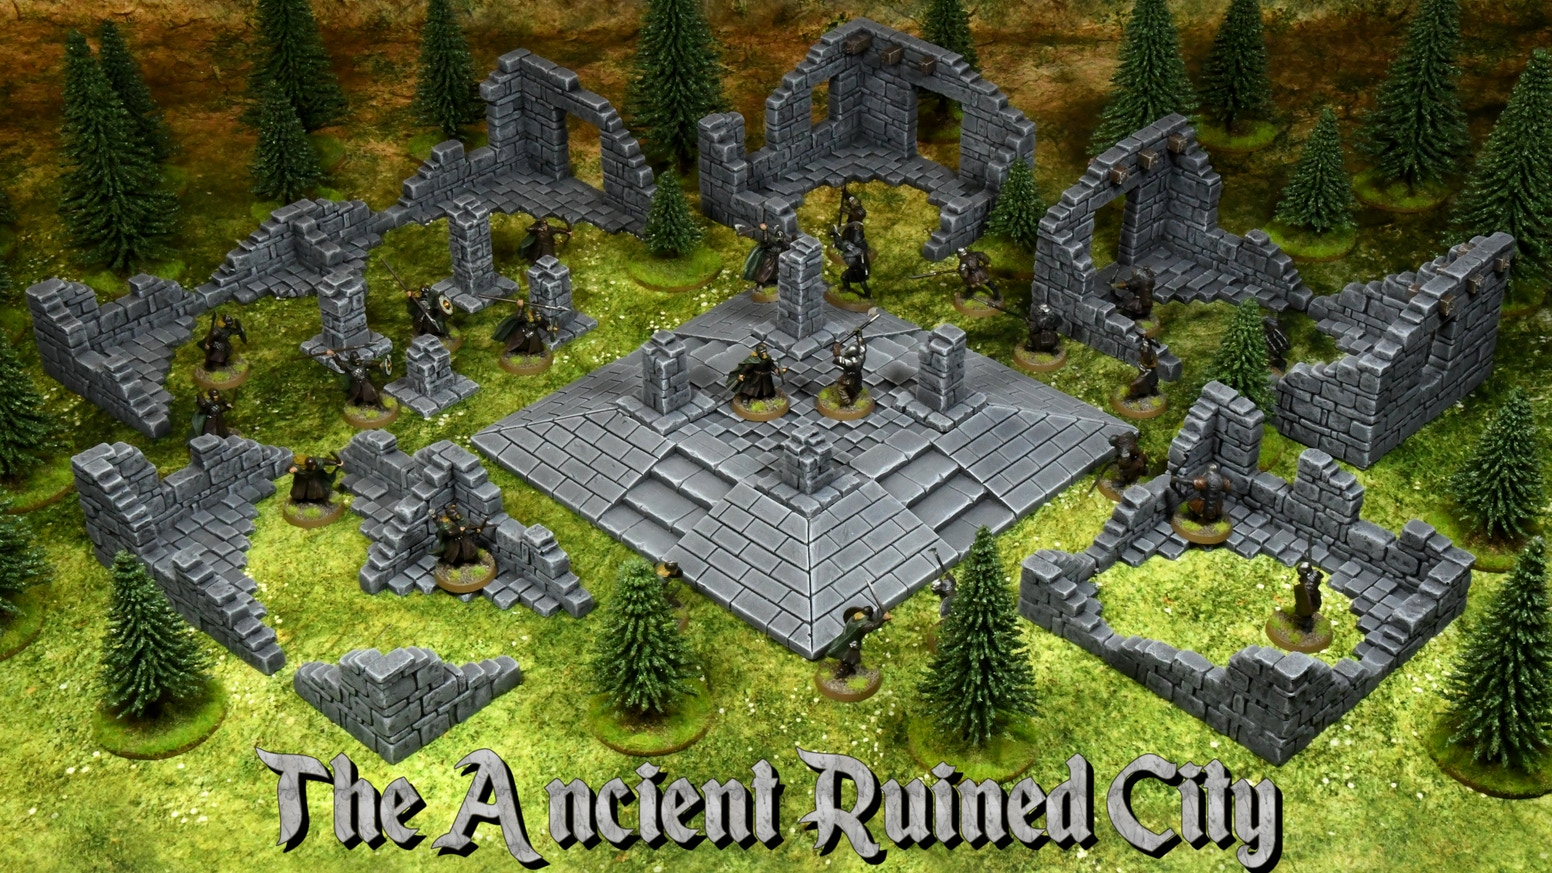 A collection of ruined building for tabletop RPGs and wargames!